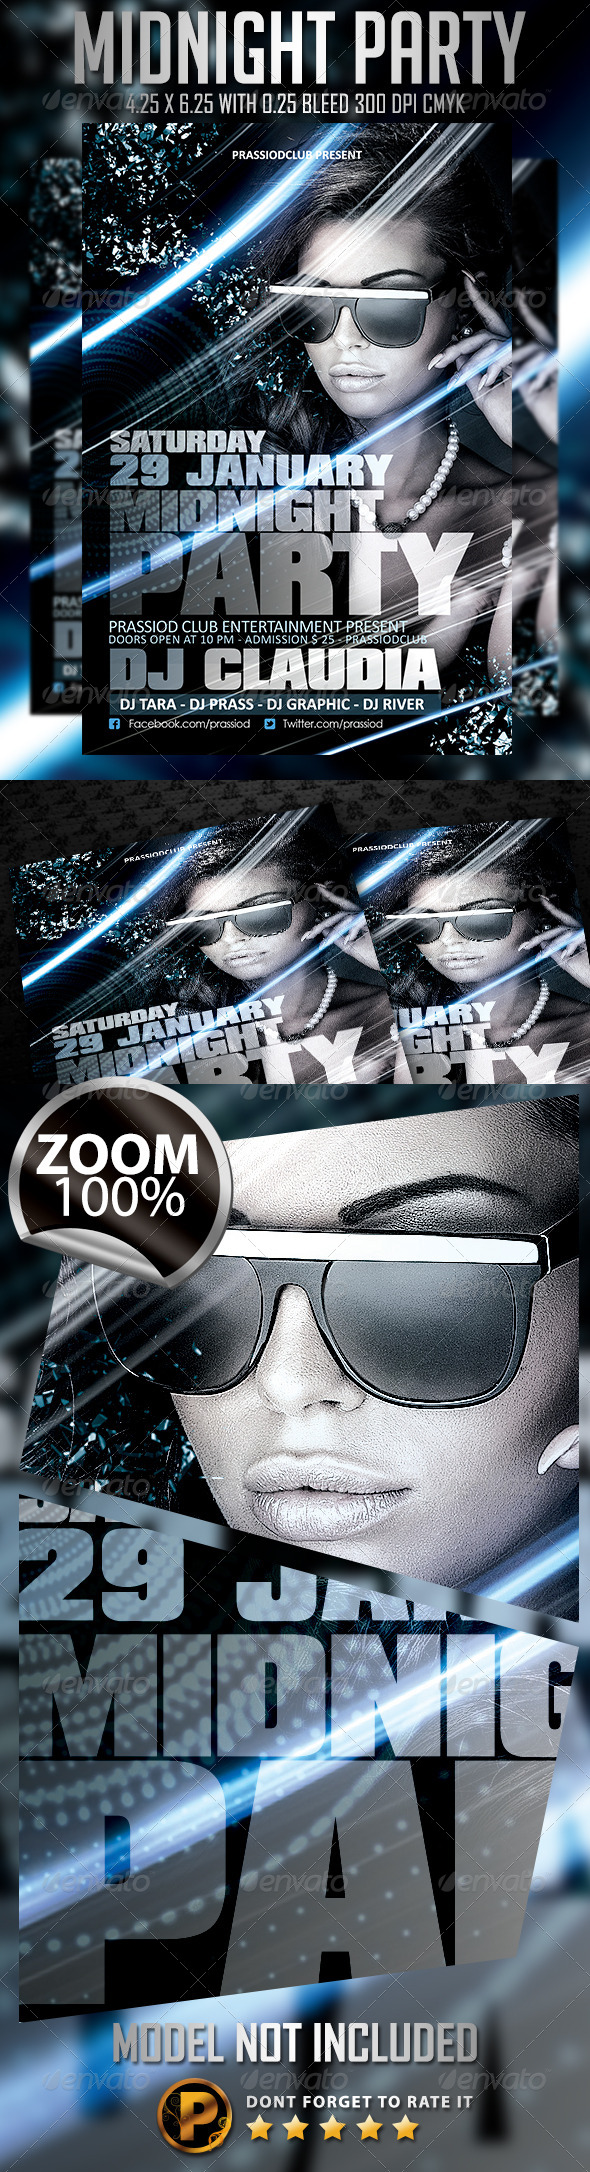 Midnight Party Flyer Template - Clubs & Parties Events